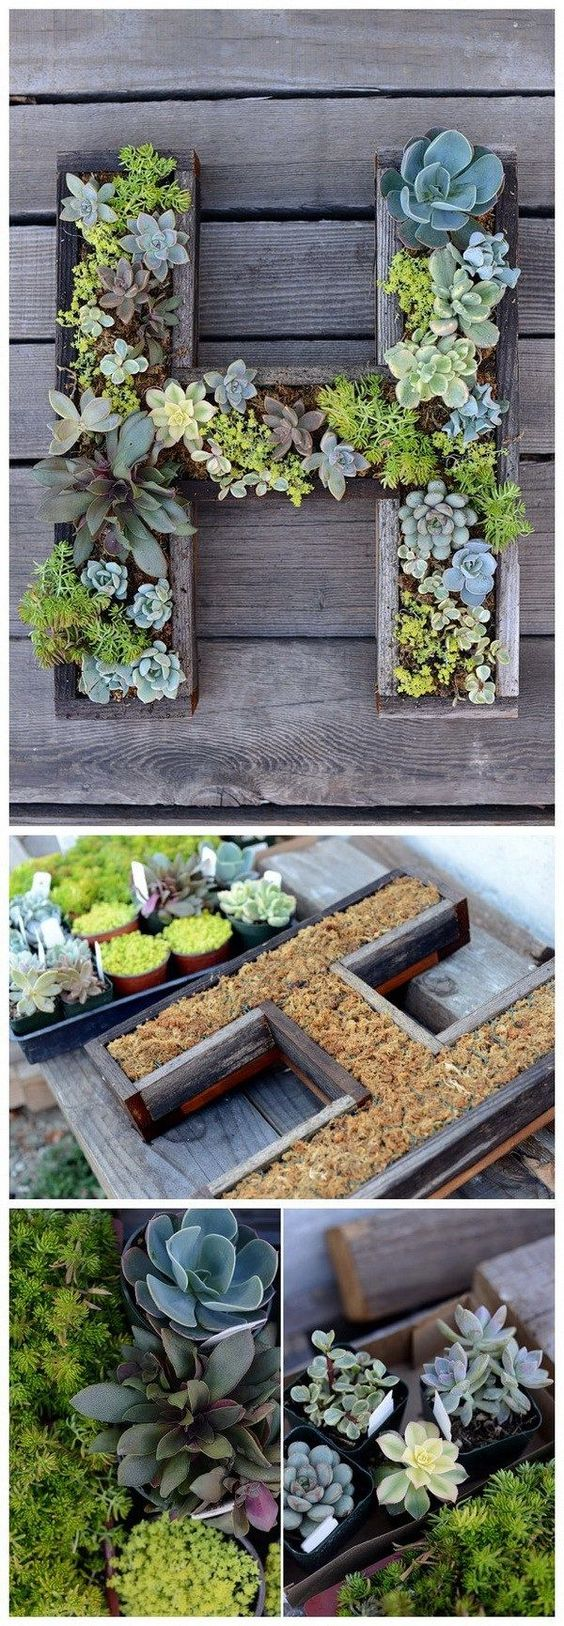 40 Innovative Diy Wall Gardens Outdoor Design Ideas To